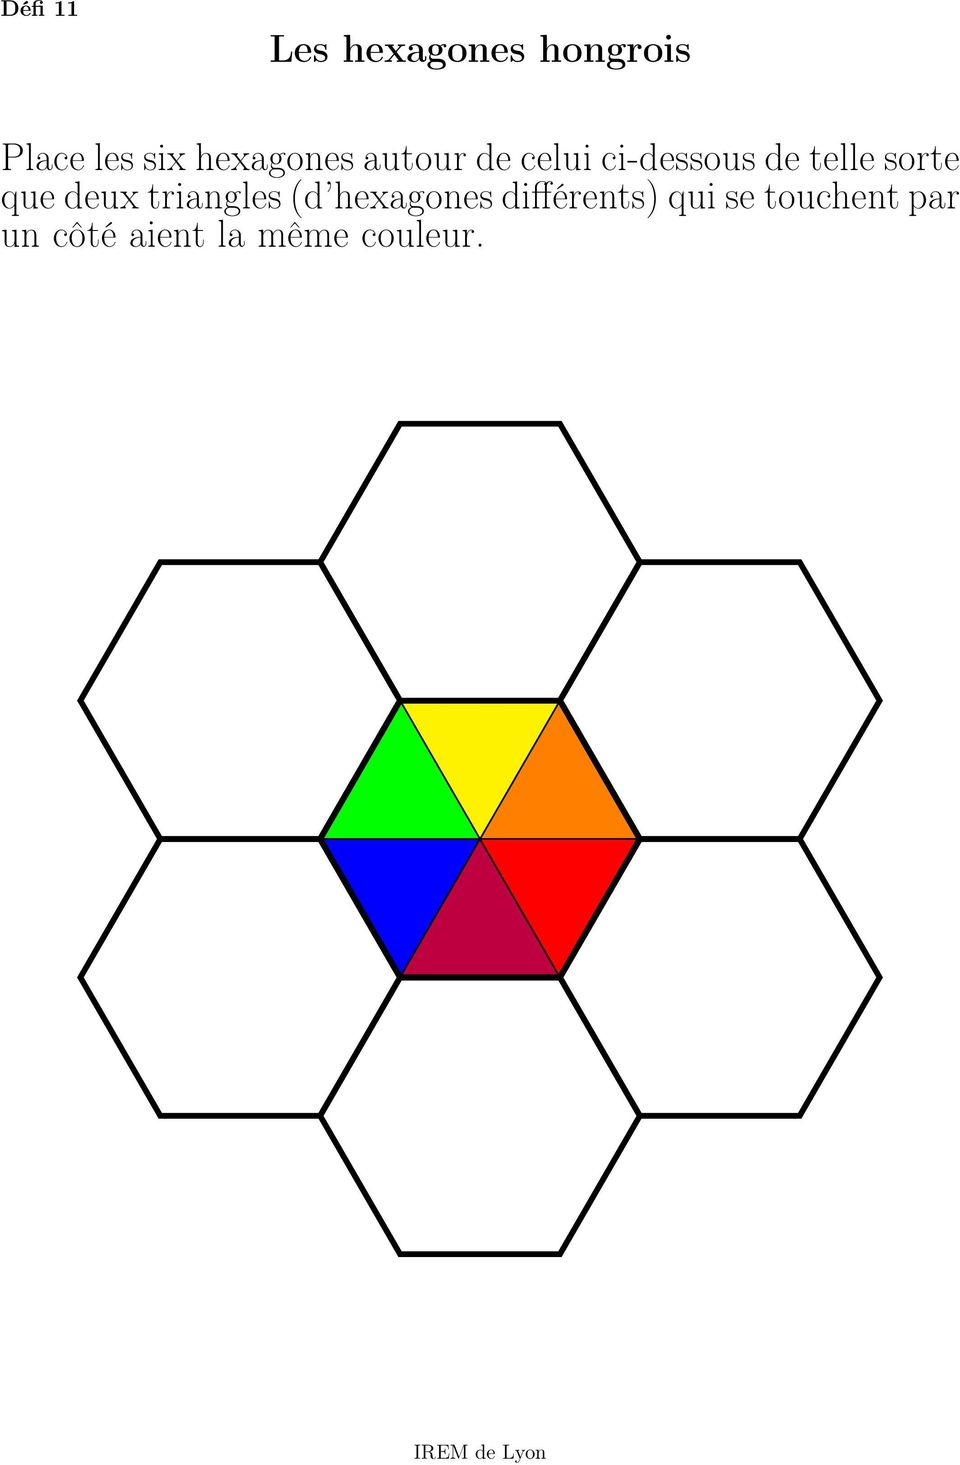 sorte que deux triangles (d hexagones